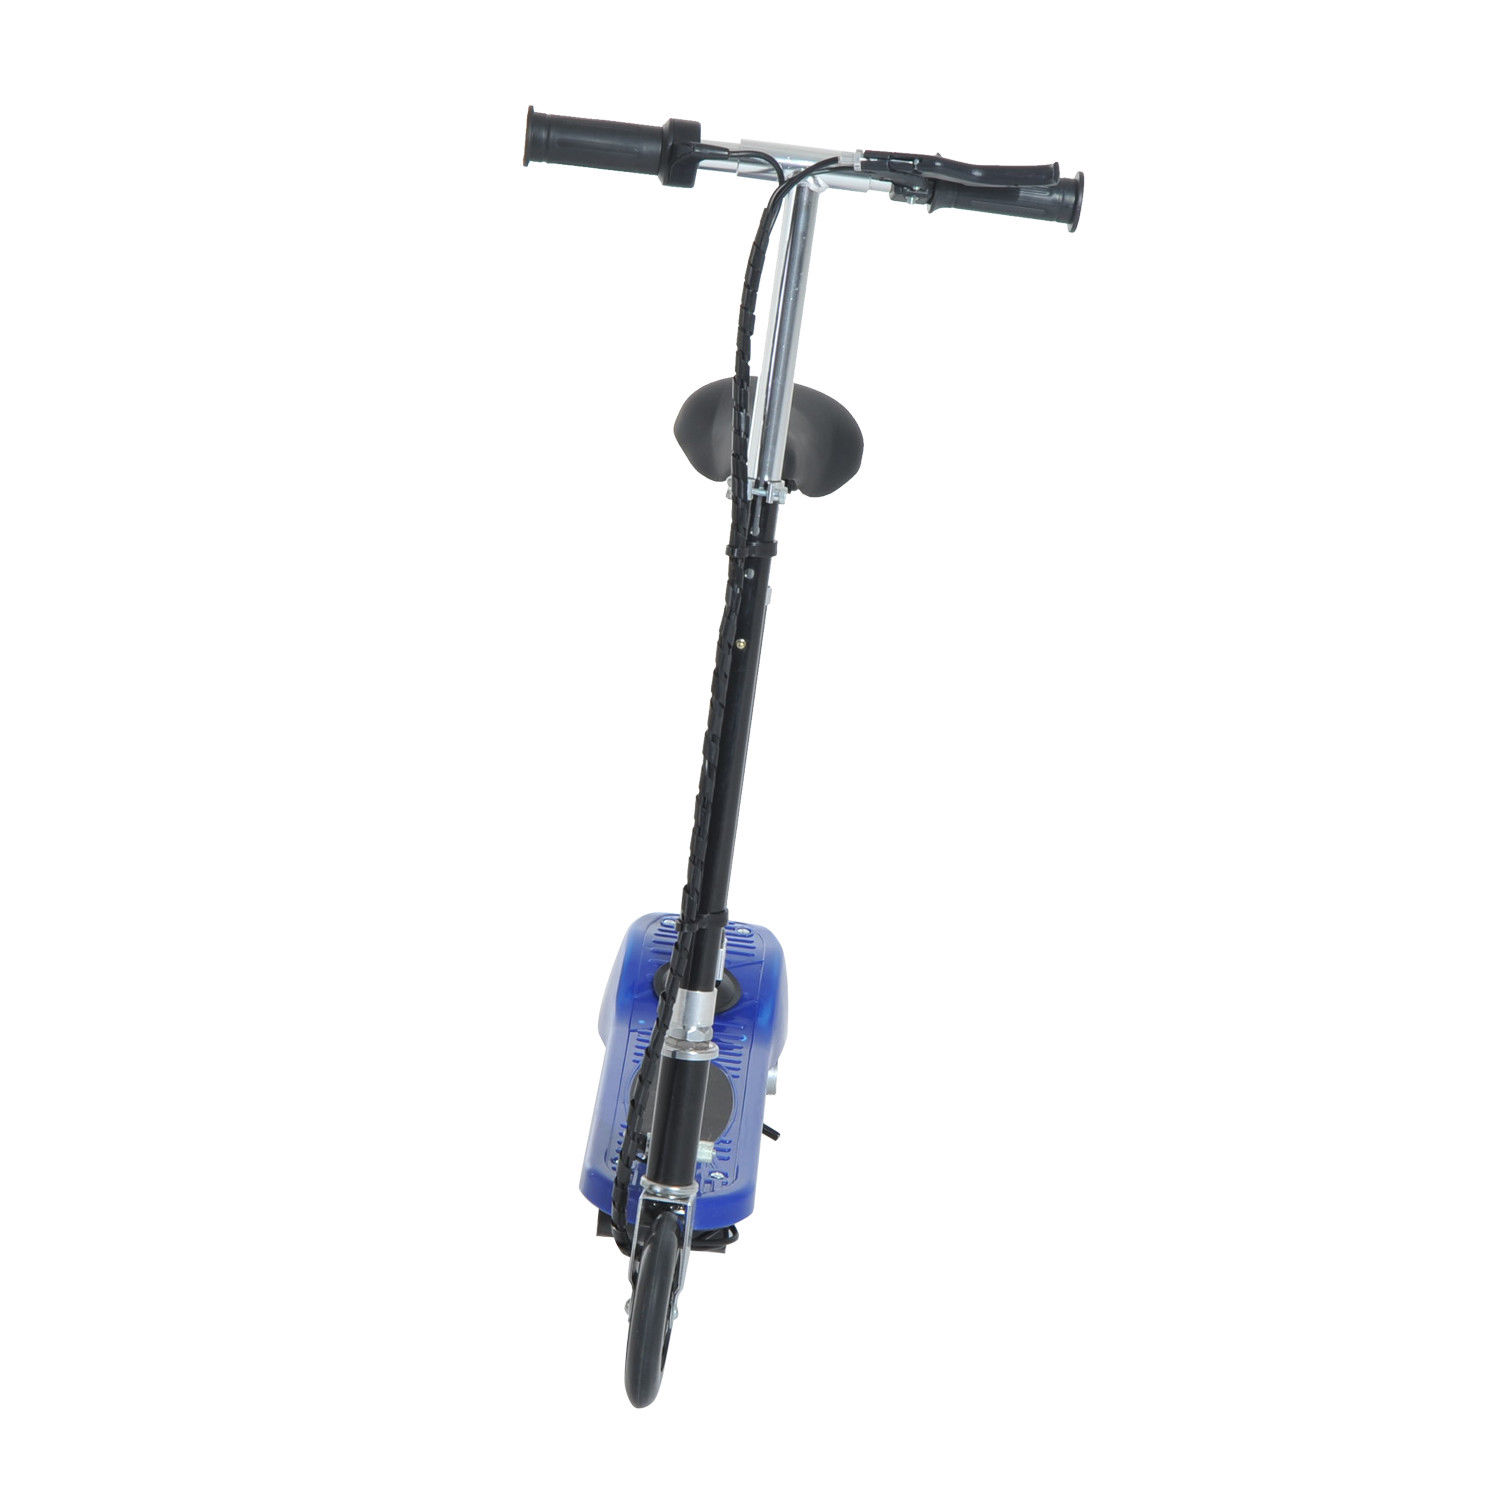 NEW Ride on Adjustable Electric Scooter for Kids E Scooter